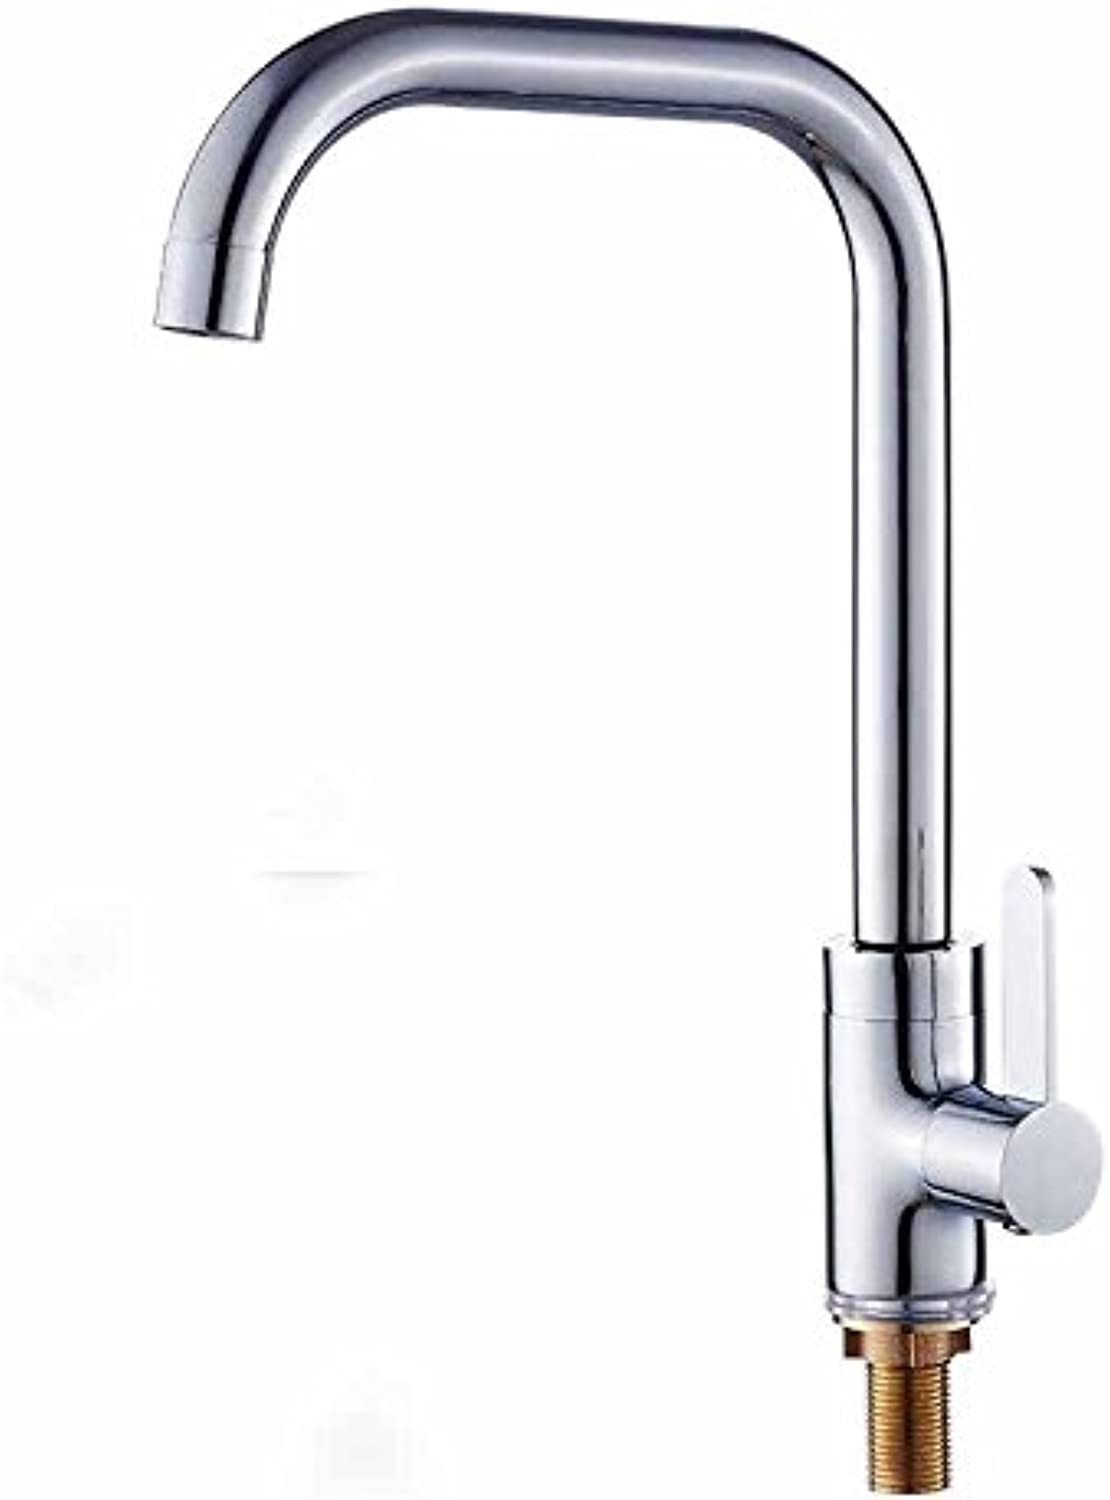 MulFaucet Faucet Water tap Taps Swivel Hoses Kitchen hot and Cold Copper redatable Household Single Handle Single Hole C